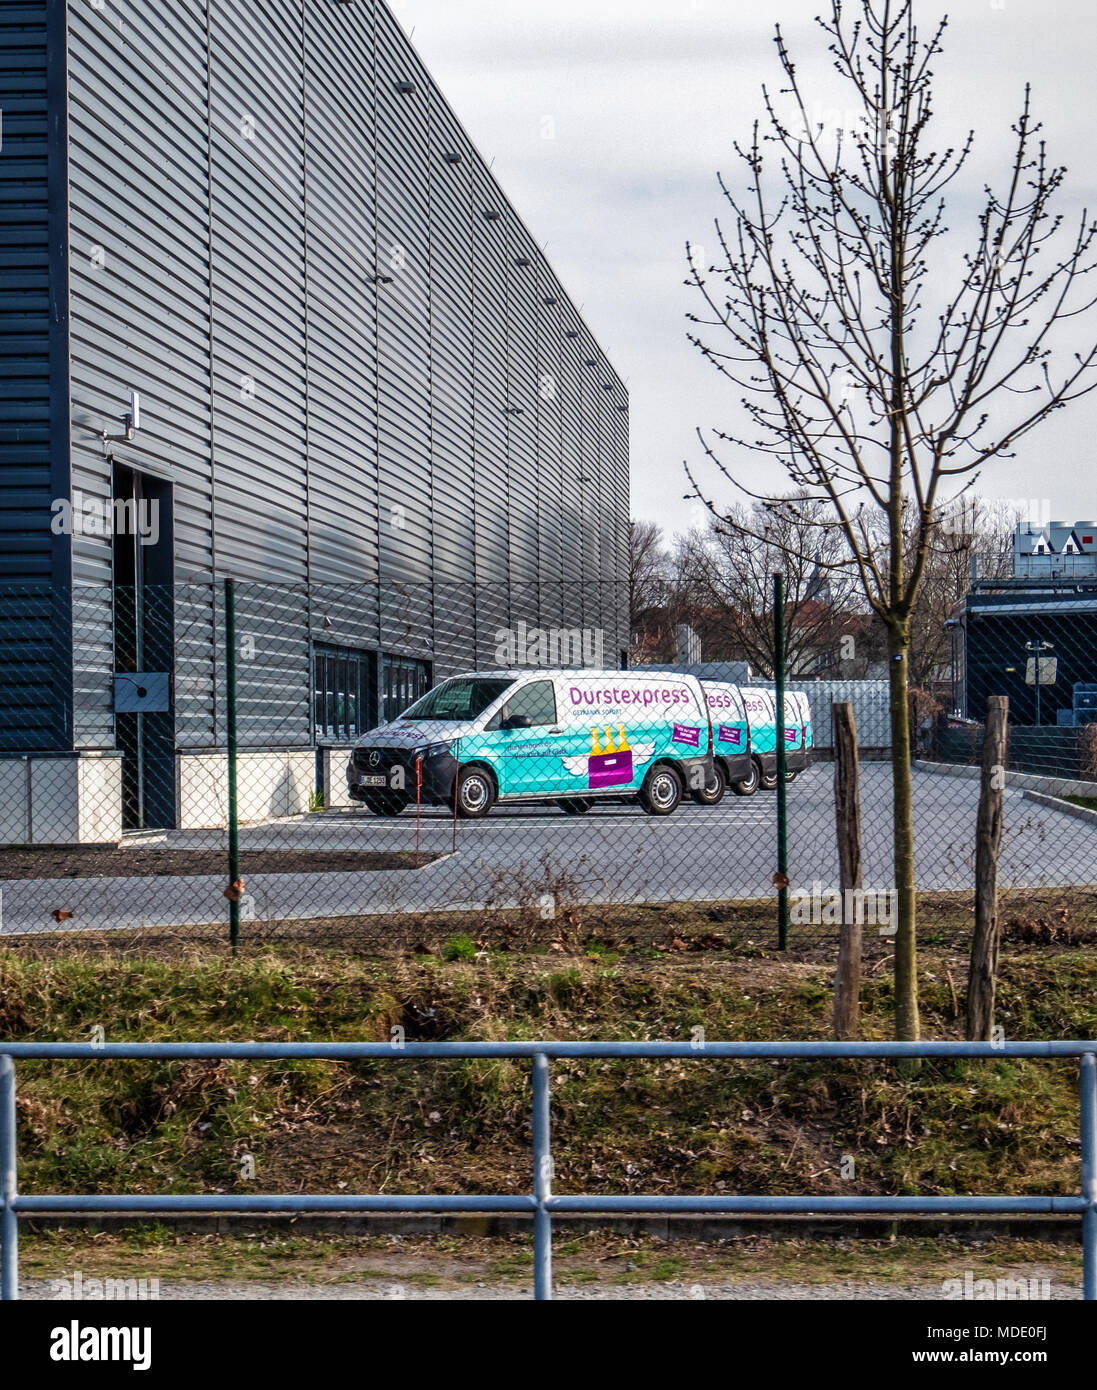 Berlin Charlottenburg-Wilmersdorf. Durstexpress delivery vans parked outside warehouse next to Westhafen canal. On-line drinks ordering business Stock Photo